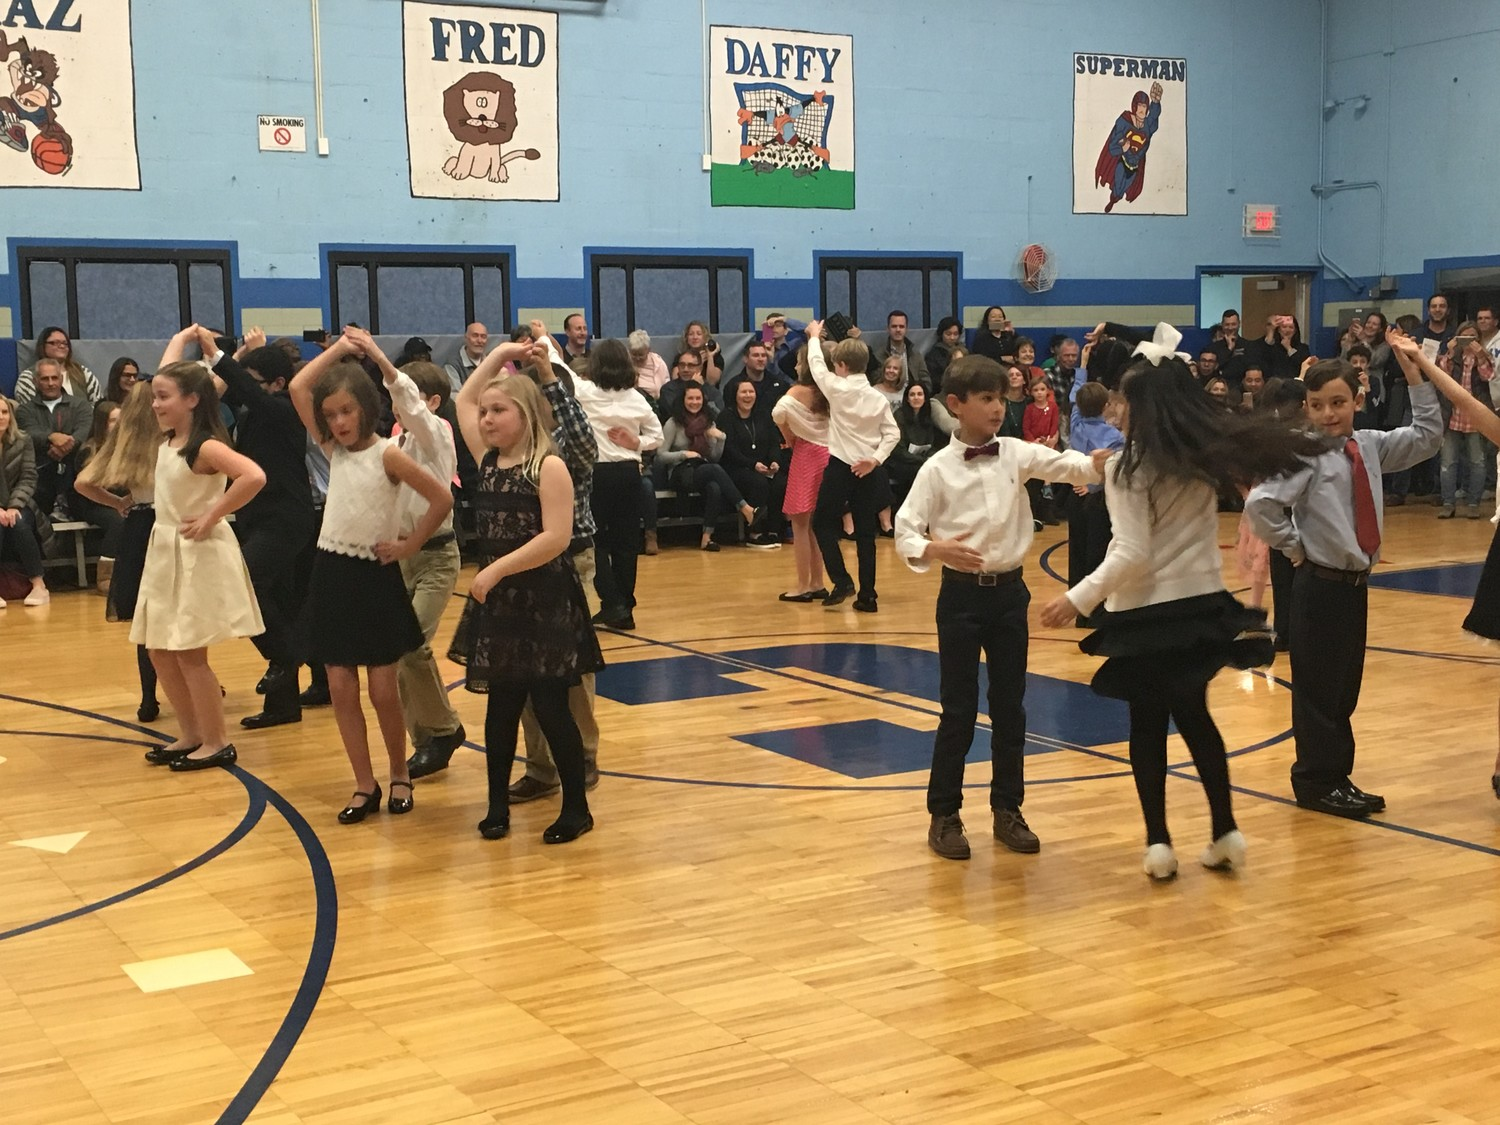 William S. Covert Elementary School students danced the merengue during the culmination of a 10-week ballroom dance training program.